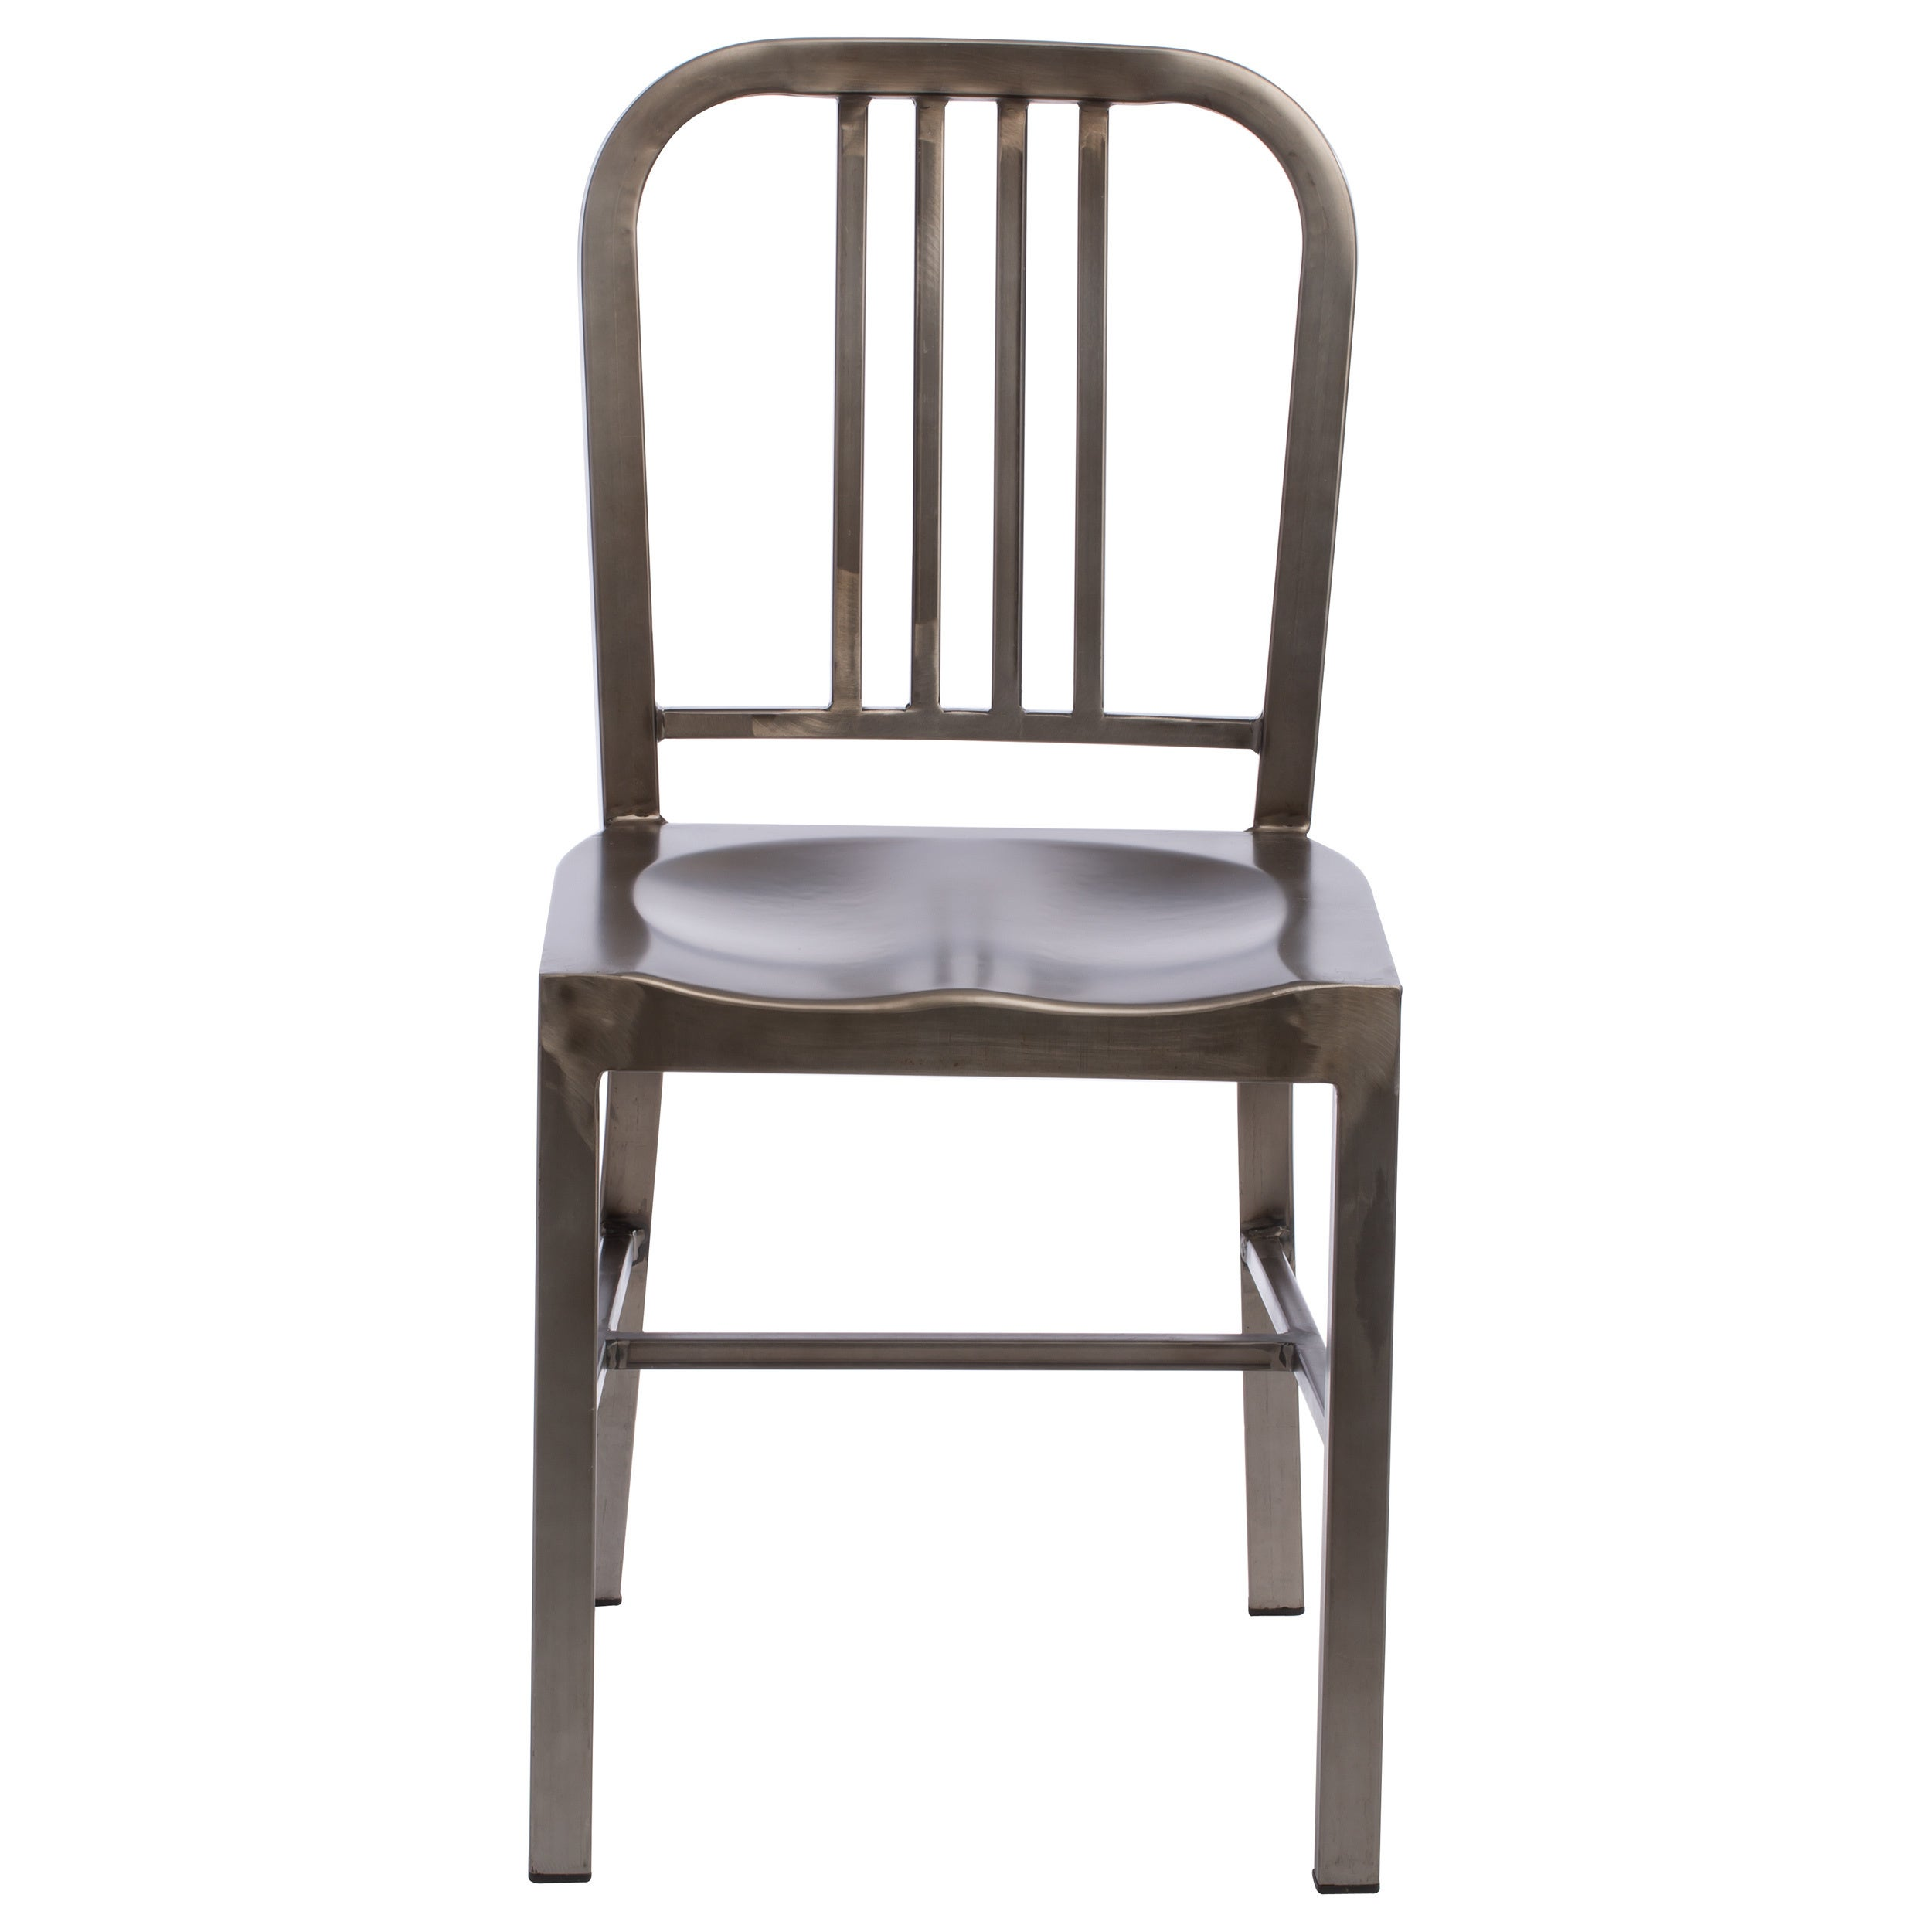 armless chairs vintage pack chair dp metal amazon antique back ca sky blue and office home bristow seat kitchen star